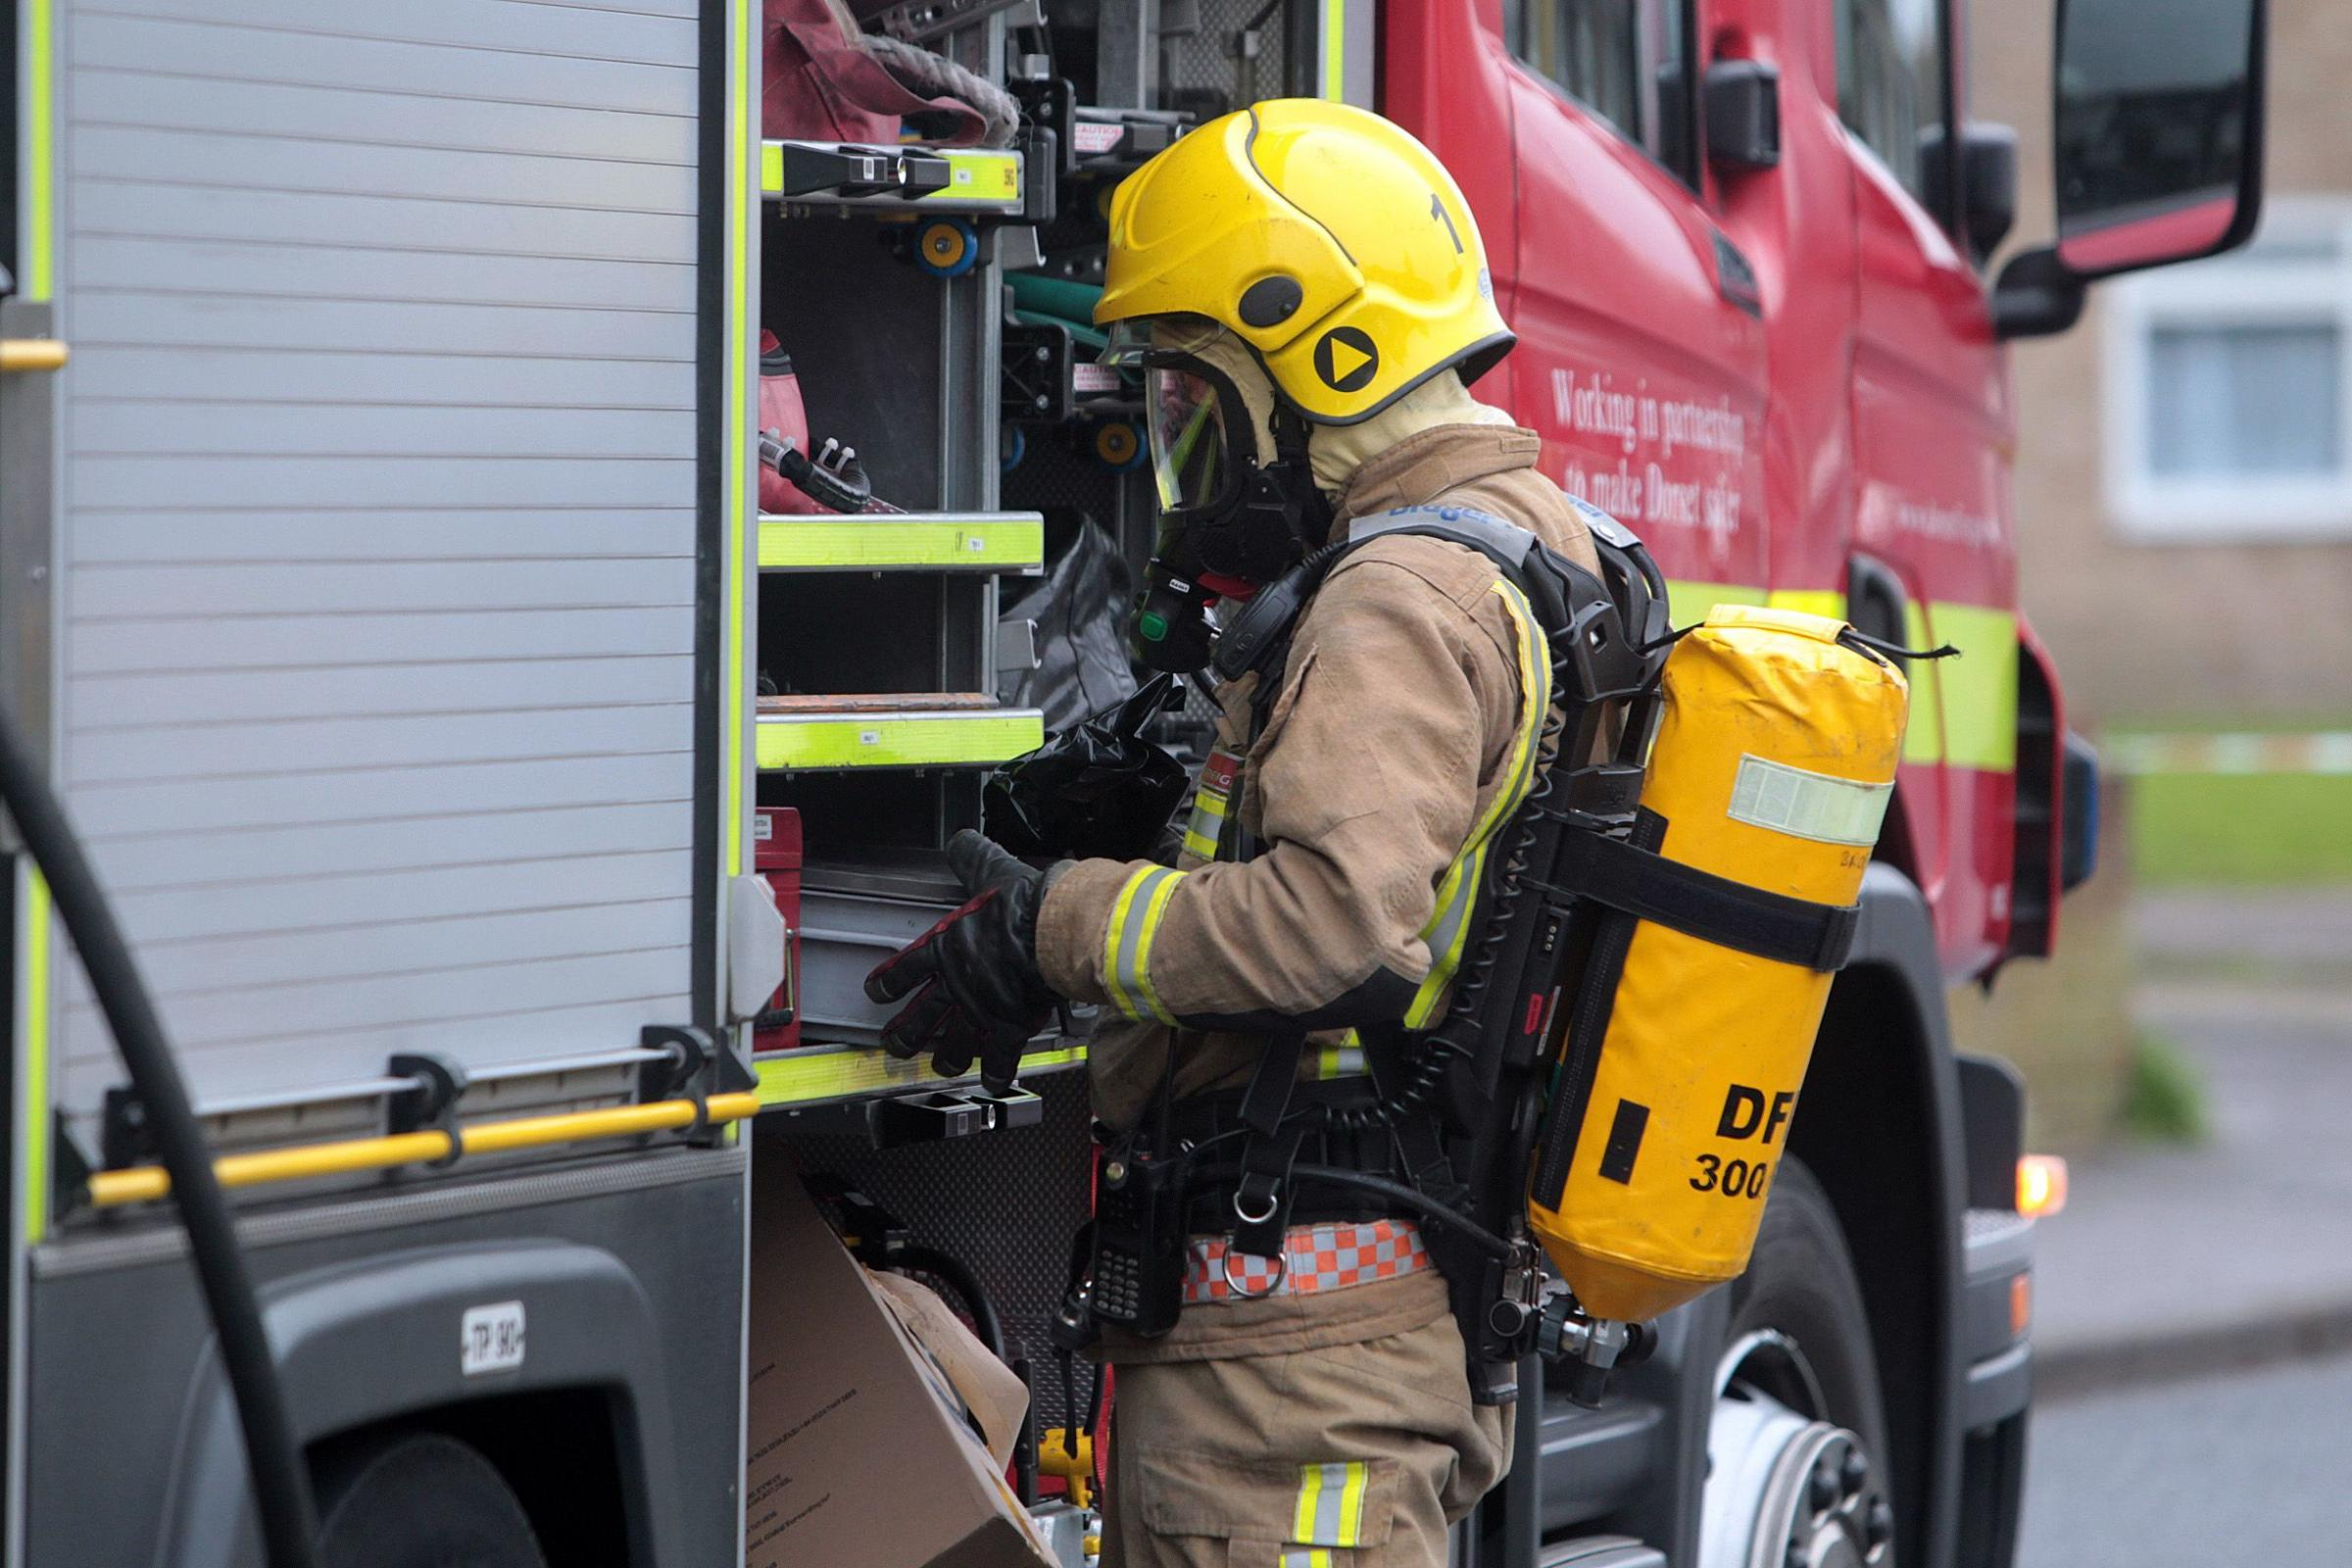 Nearly half of public buildings inspected by fire service aren't meeting safety standards